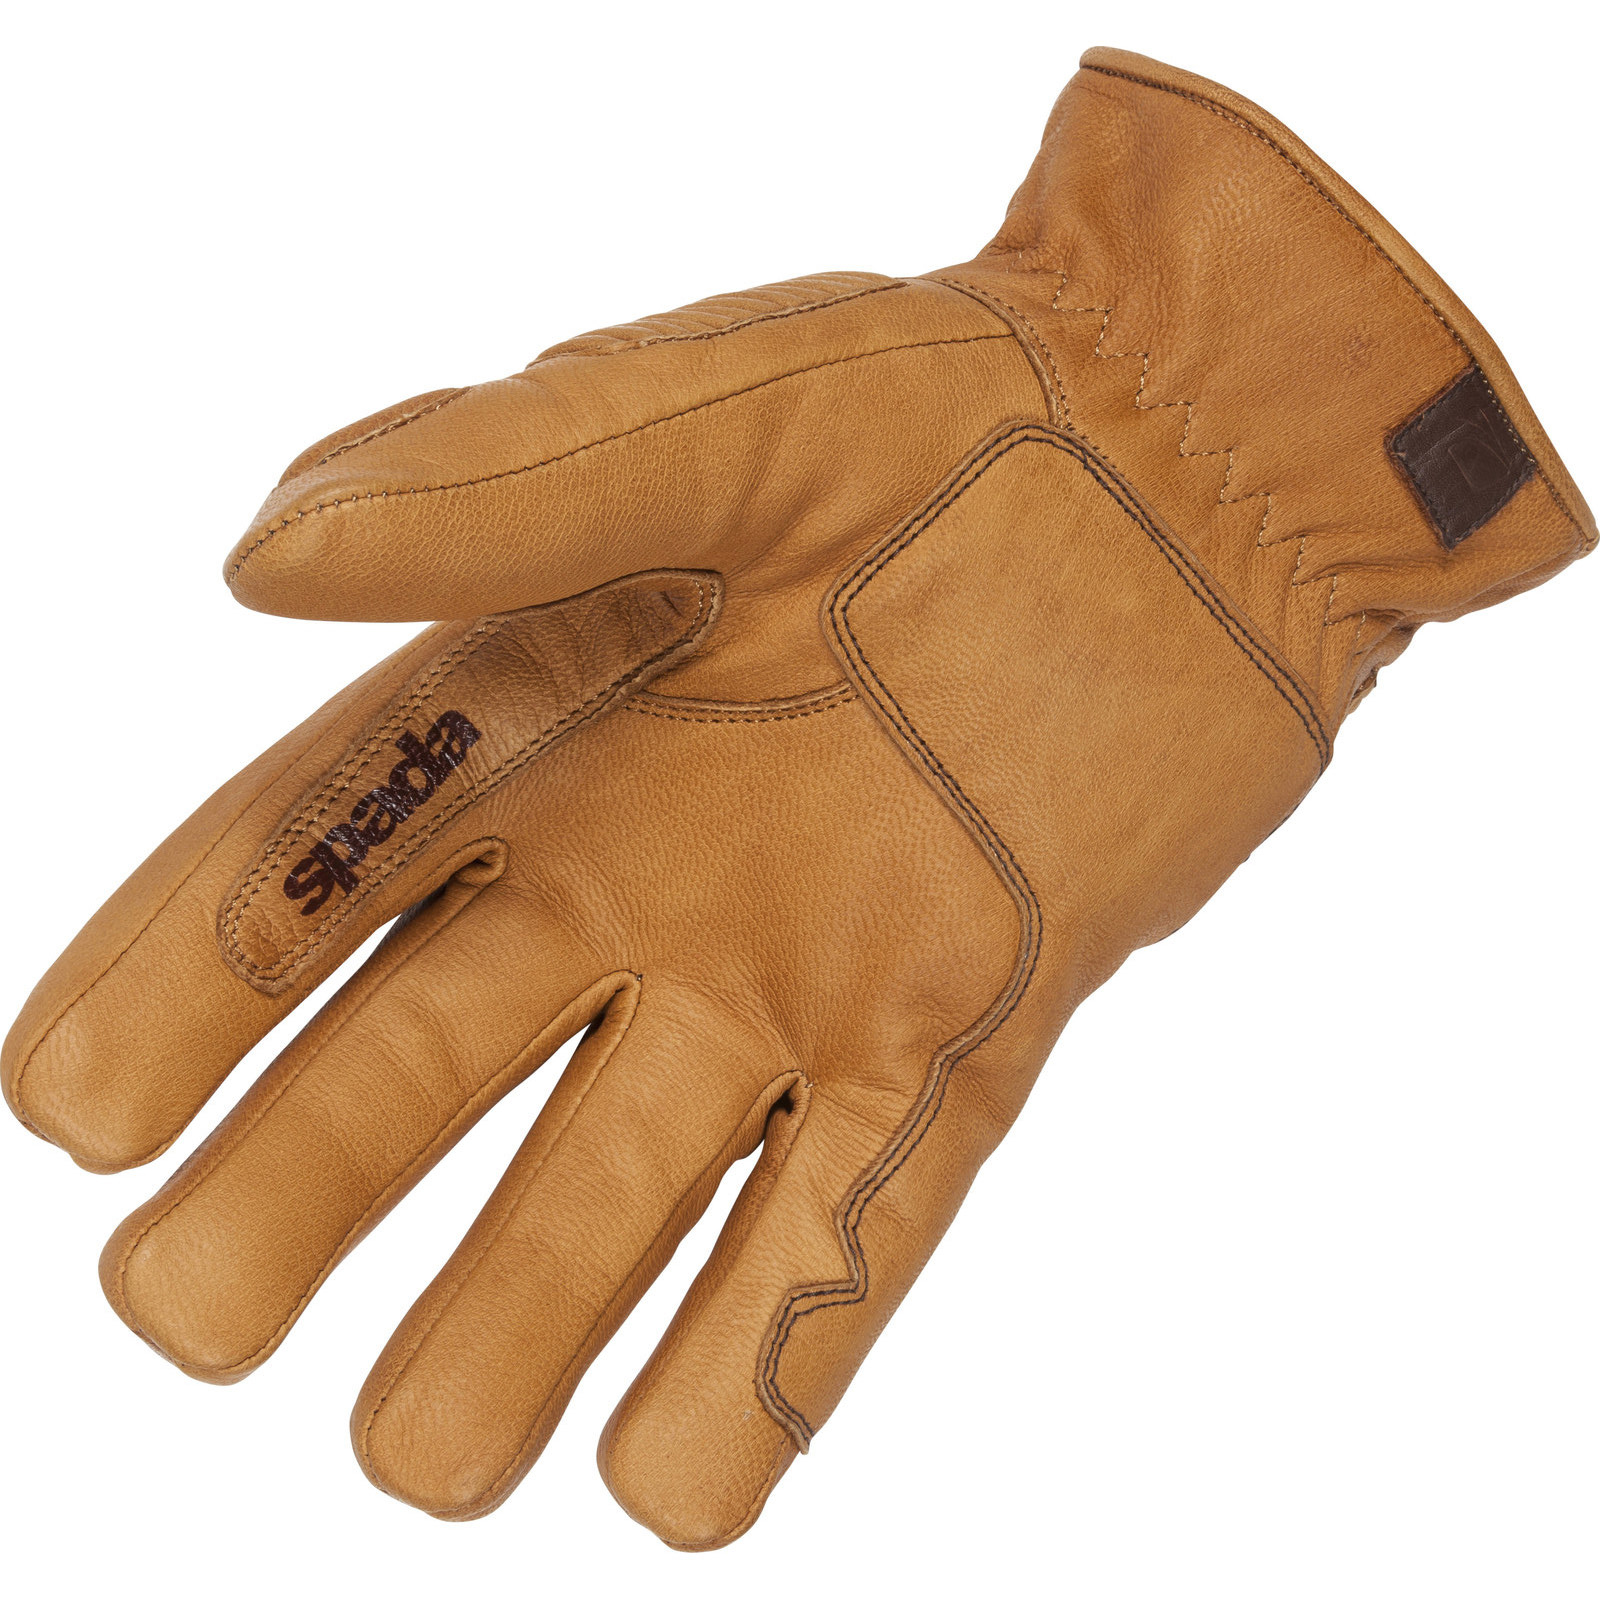 Motorcycle leather gloves waterproof -  Picture 3 Of 3